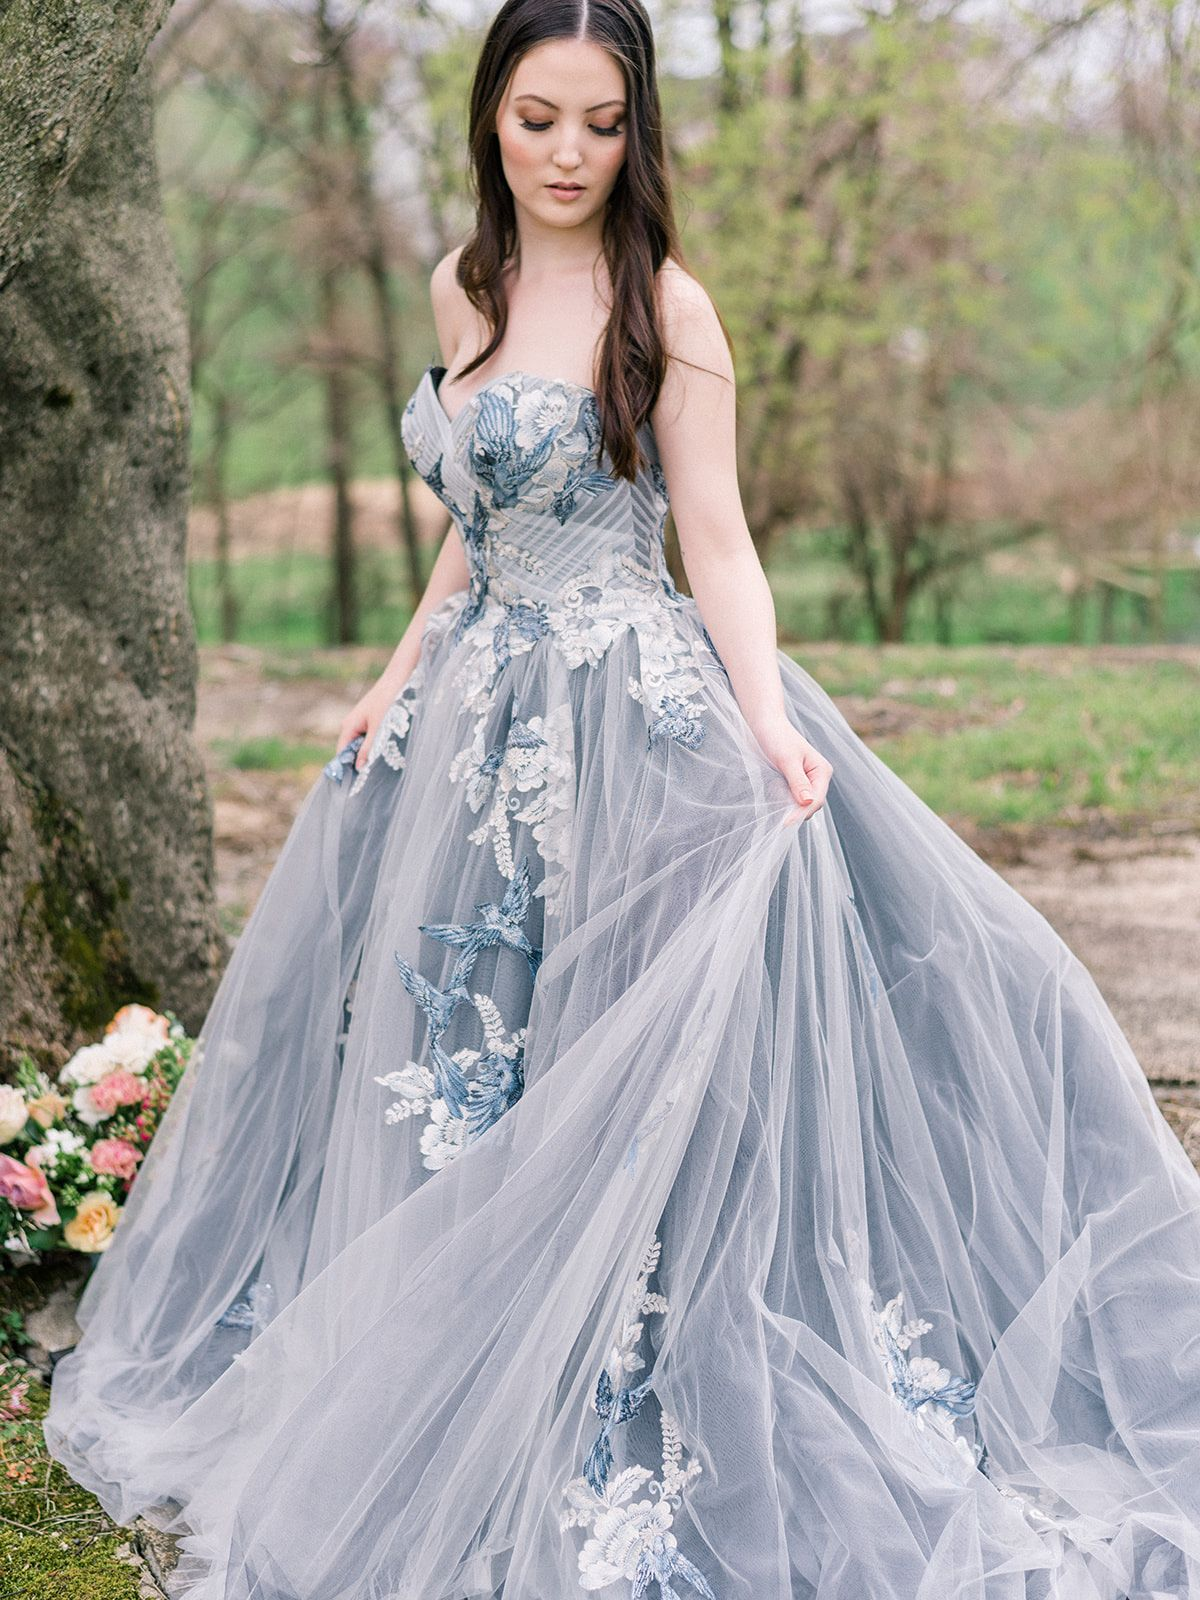 This Blue Ballgown Wedding Dress Is Giving Us Major Princess Vibes Colored Wedding Dresses Colored Wedding Gowns Ball Gown Wedding Dress [ 1600 x 1200 Pixel ]